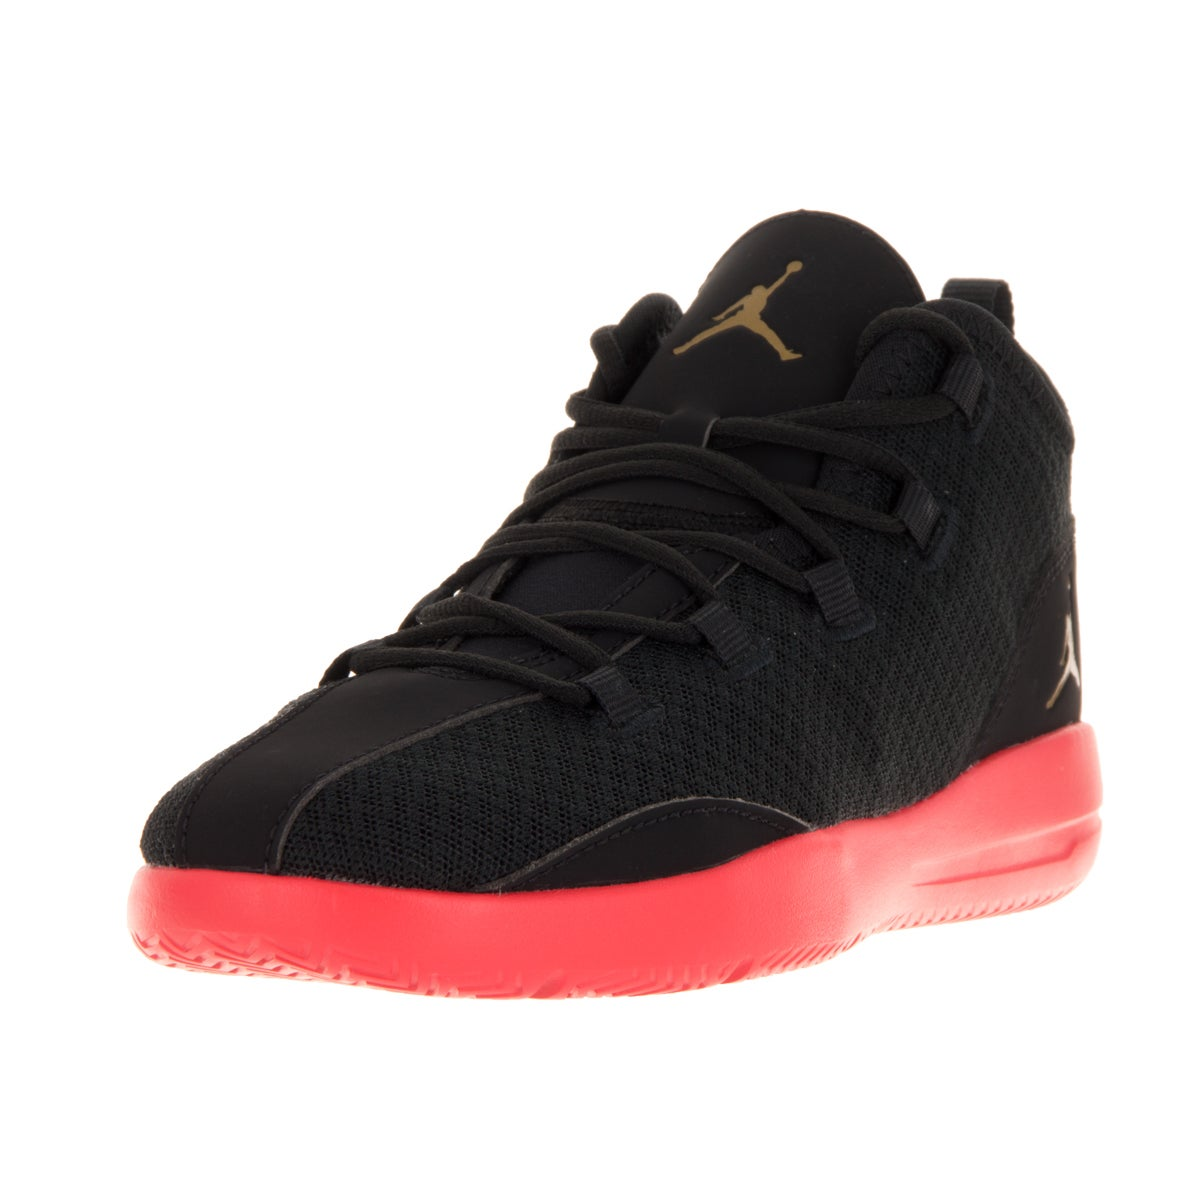 8c7cae1601b Shop Nike Jordan Kids Jordan Reveal Bp Black/Metallic Gold Coin/Infrared 23  Basketball Shoes - Free Shipping Today - Overstock - 13394467